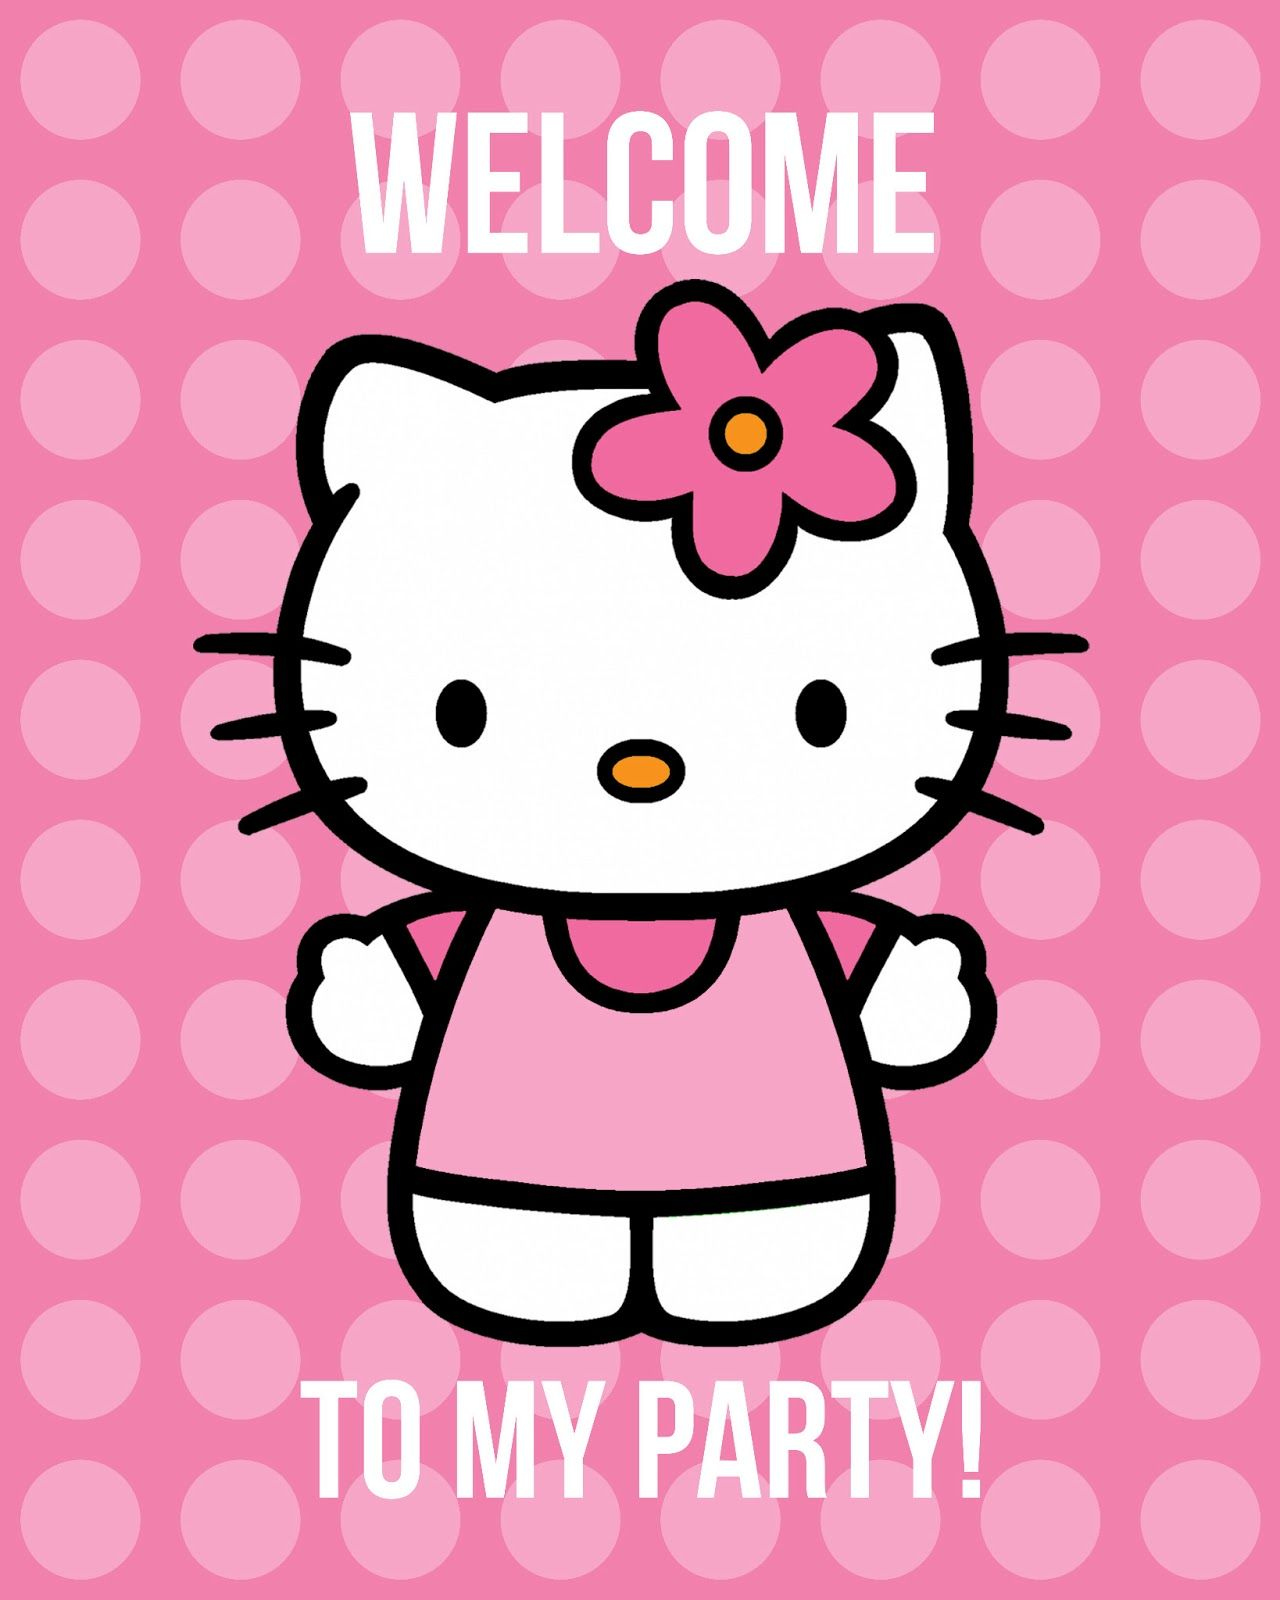 All things simple free hello kitty printables invites welcome poster button designs and - Hello kitty birthday images ...